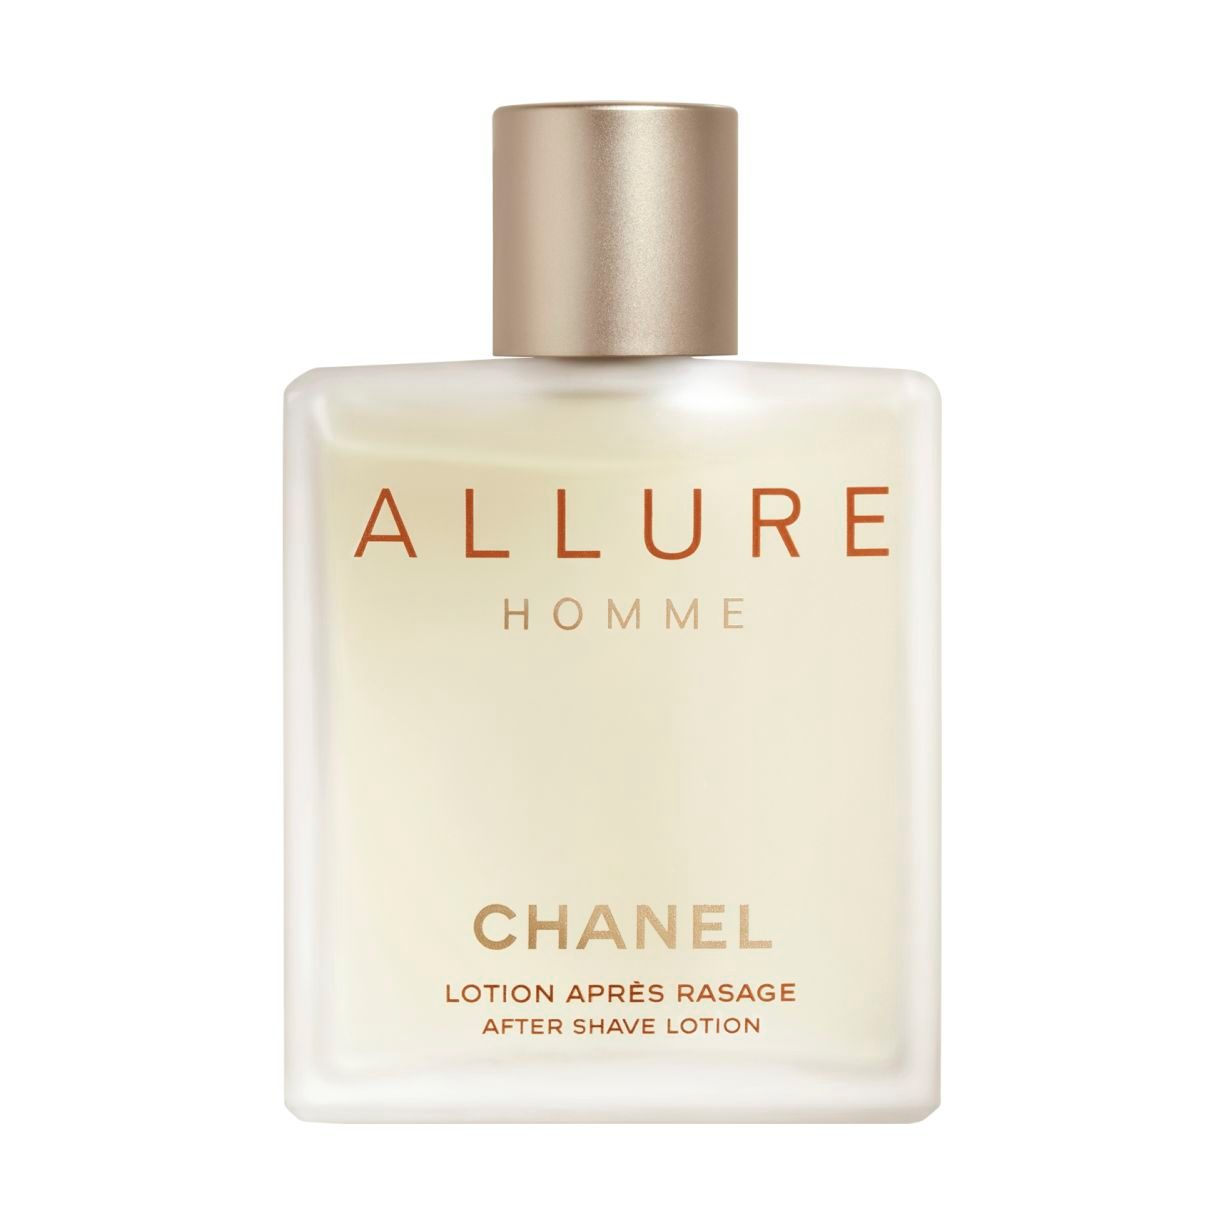 ALLURE HOMME AFTER-SHAVE LOTION